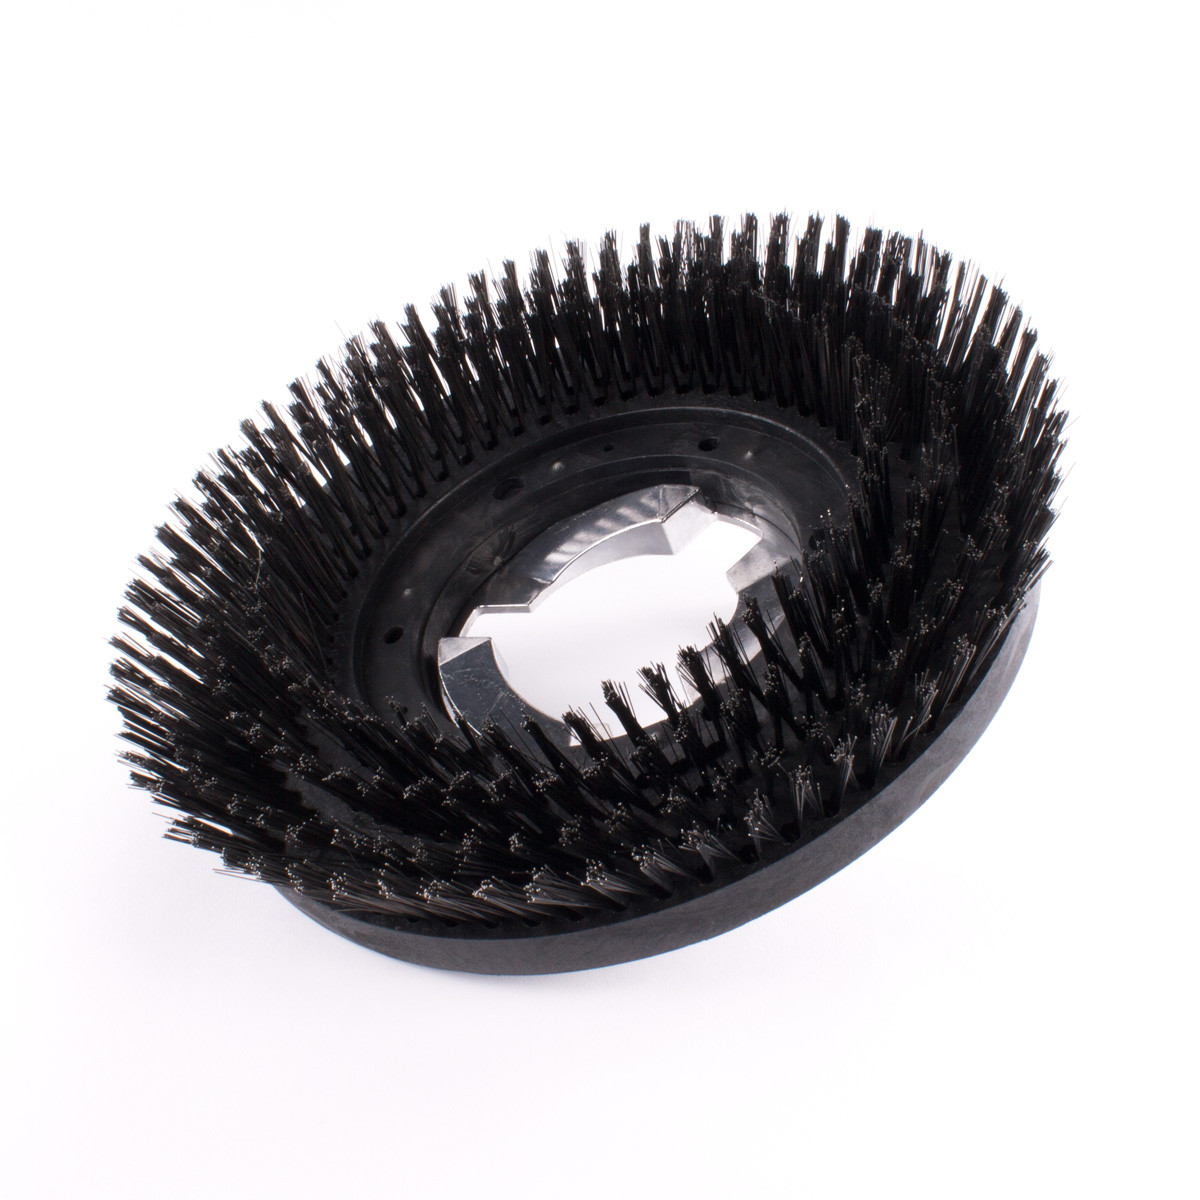 15 inch aggressive wire floor scrubbing brush fits for 15 inch floor buffer